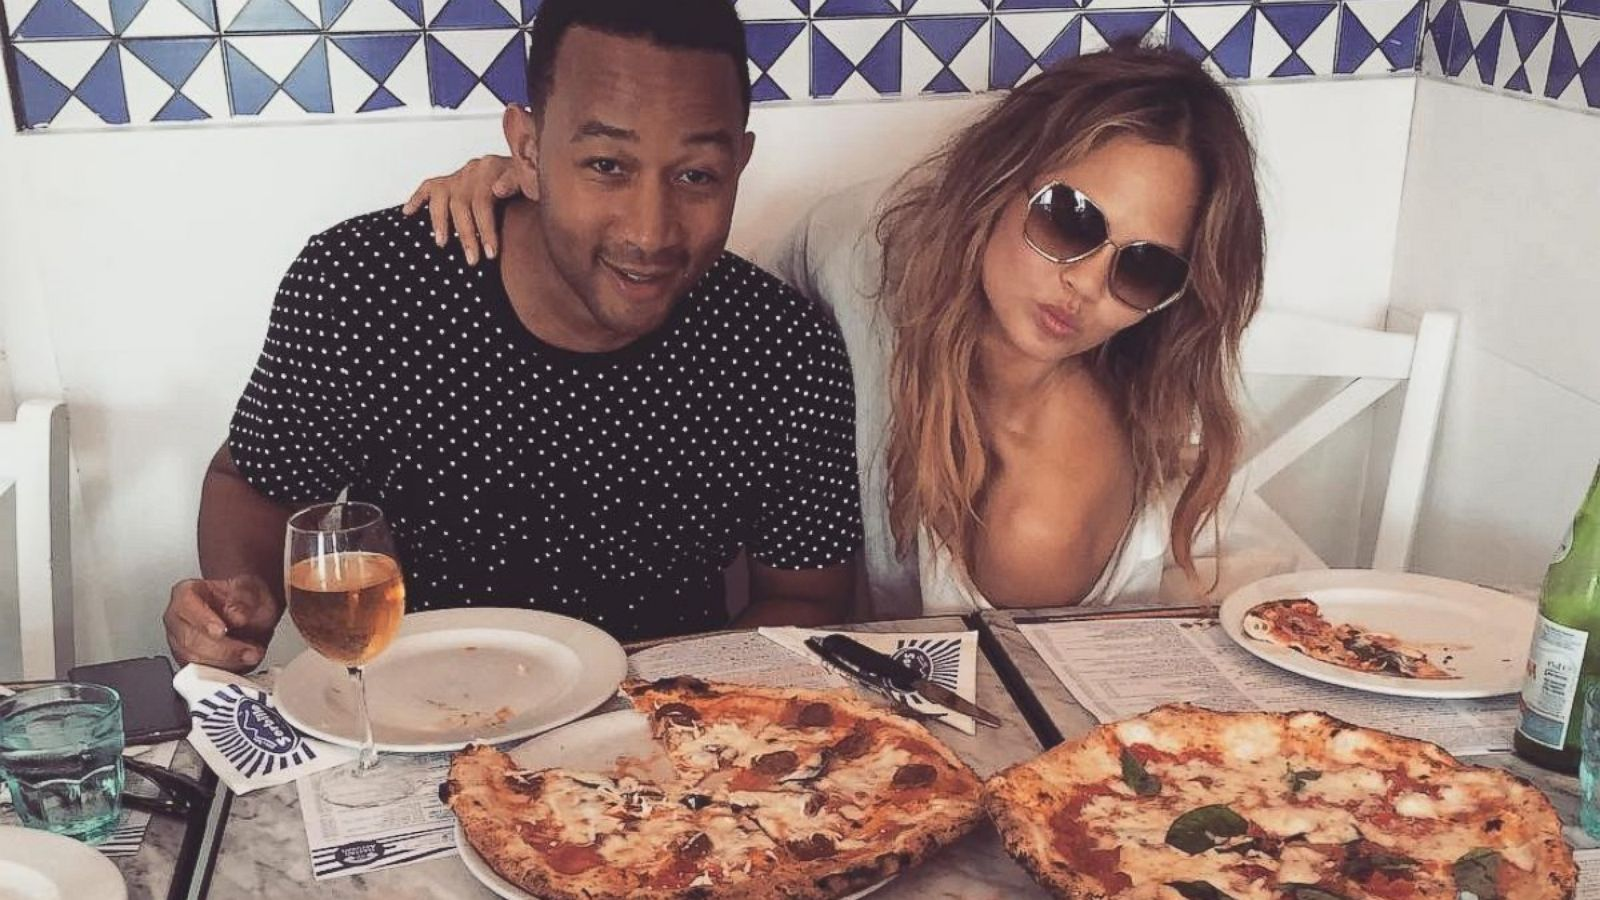 Chrissy Teigen, Cindy Crawford and Others Share Photos From Their Summer  Getaways - ABC News